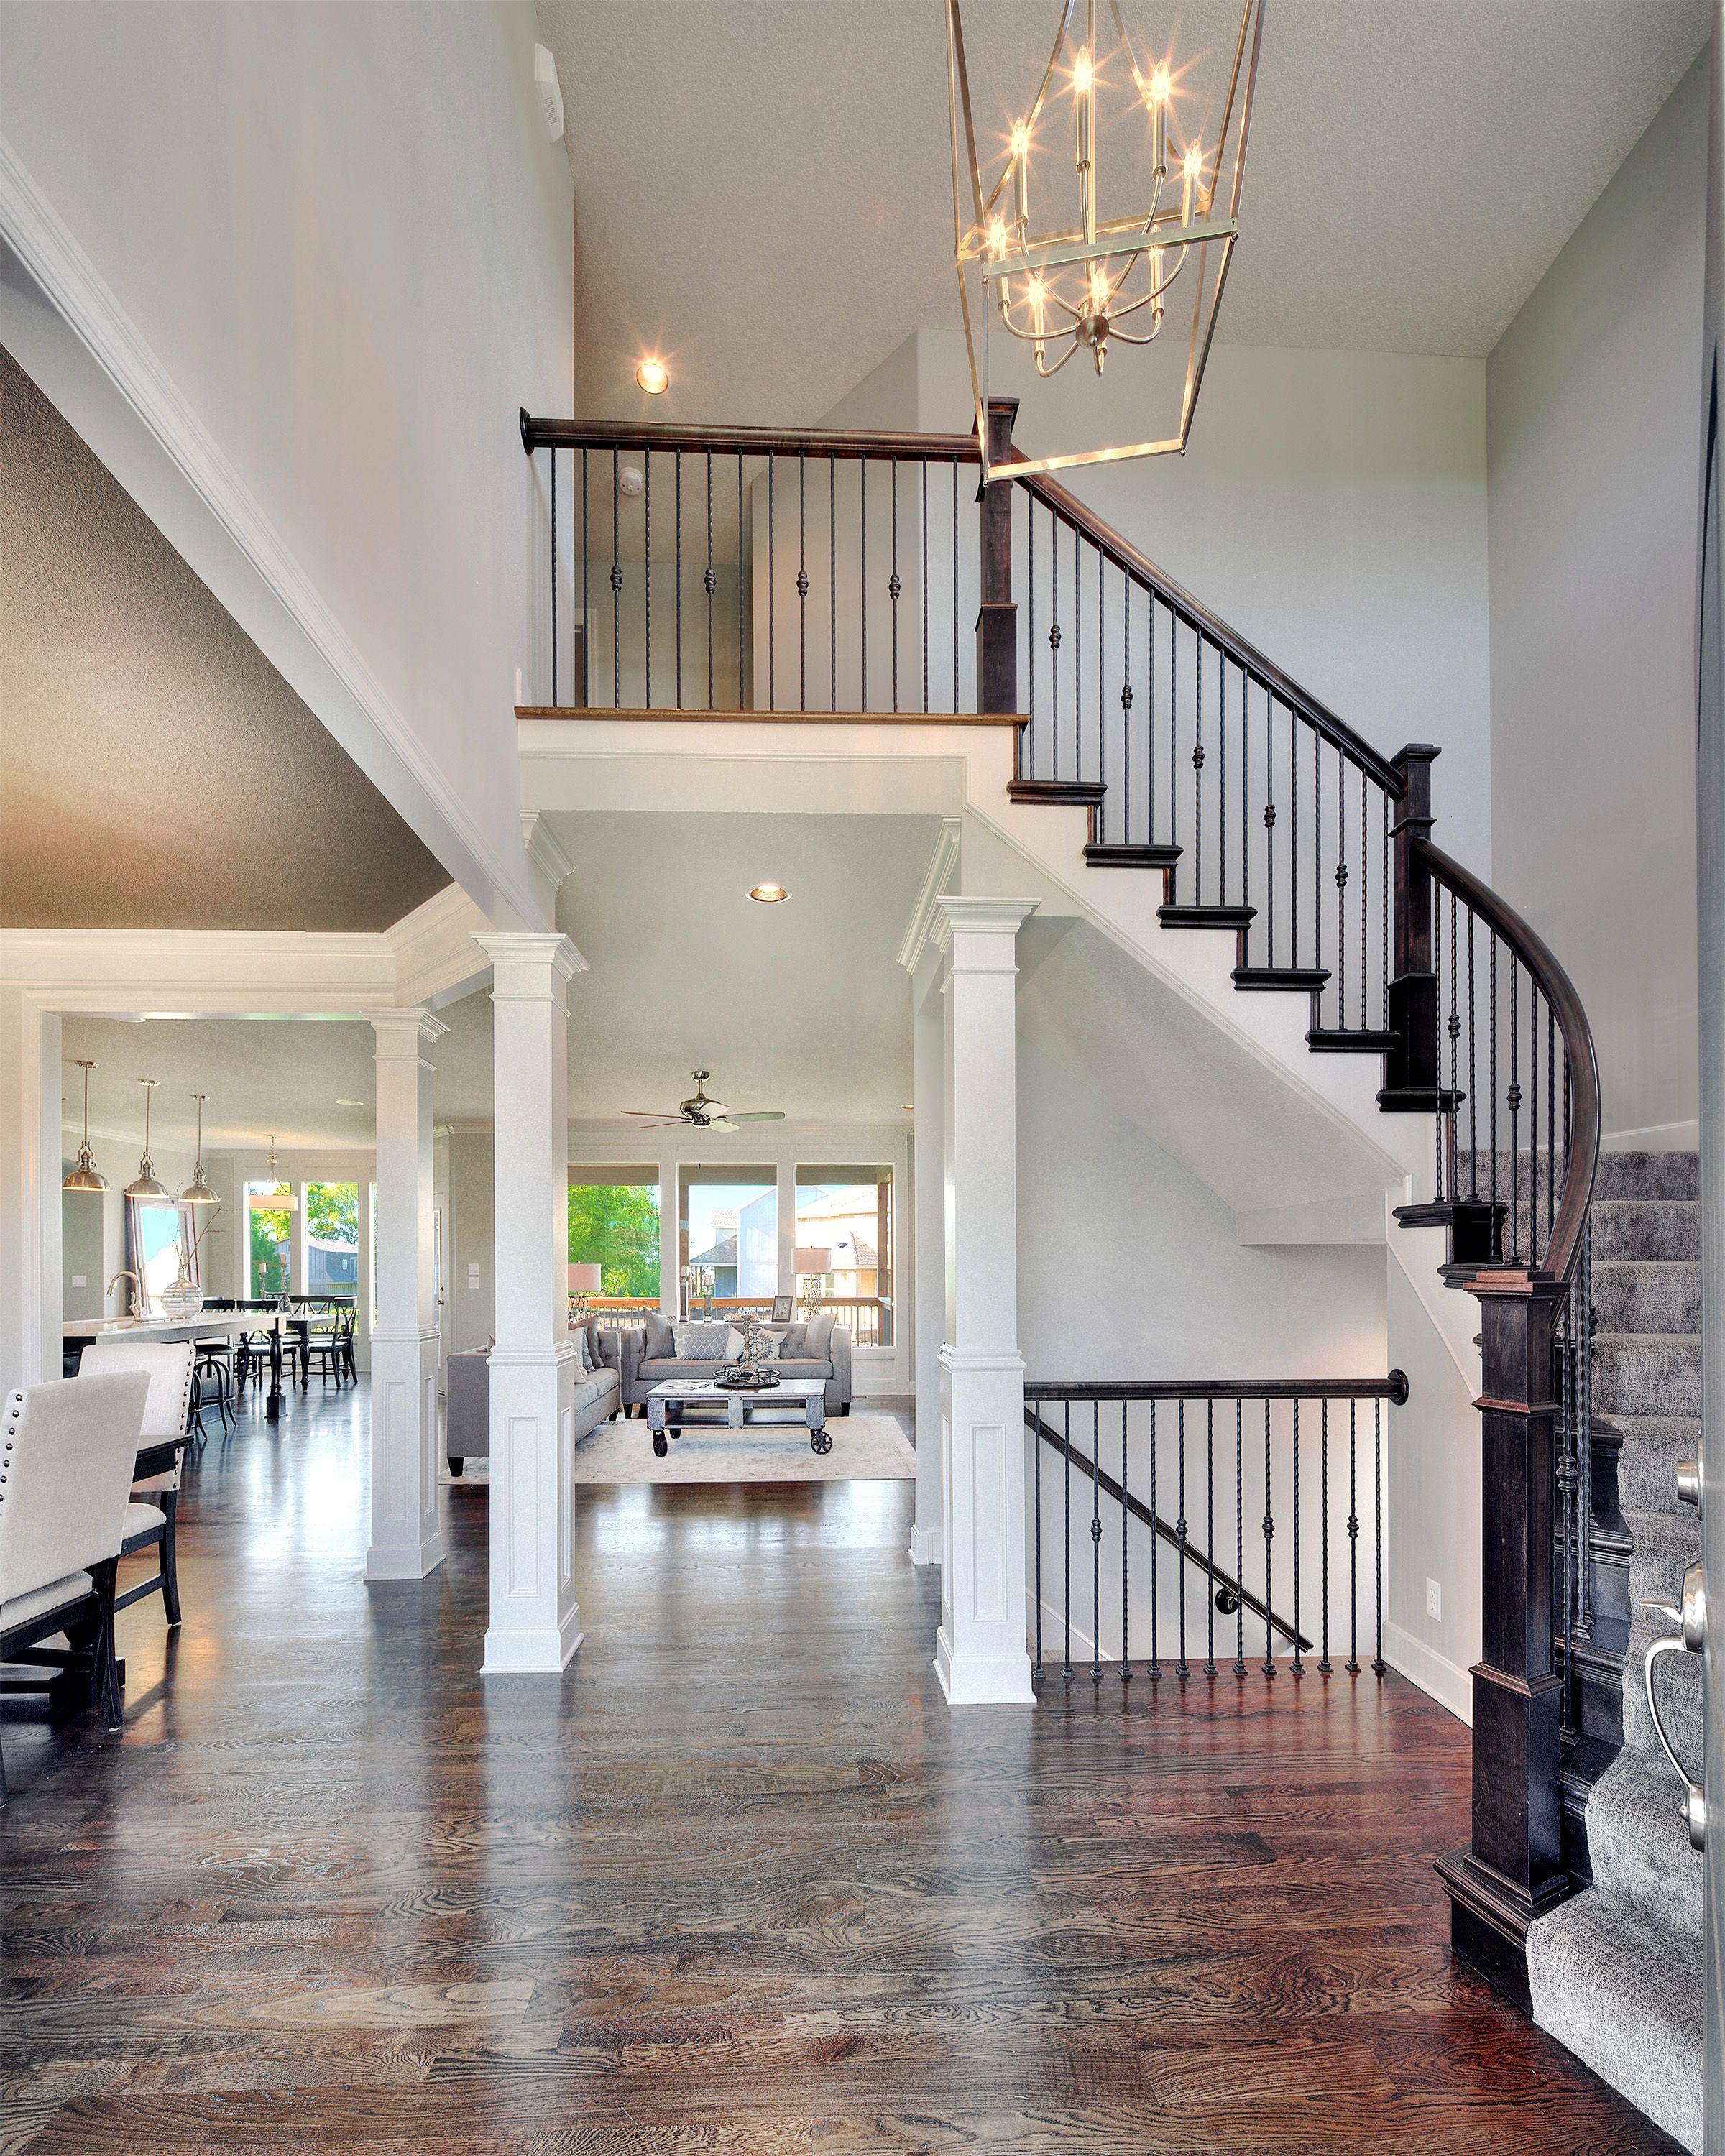 2 Story Entry Way, New Home, Interior Design, Open Floor Plan, Light  Fixtures, Spindles On Curved Staircase By Bickimer Homes  Http://www.bickimerhomes.com/